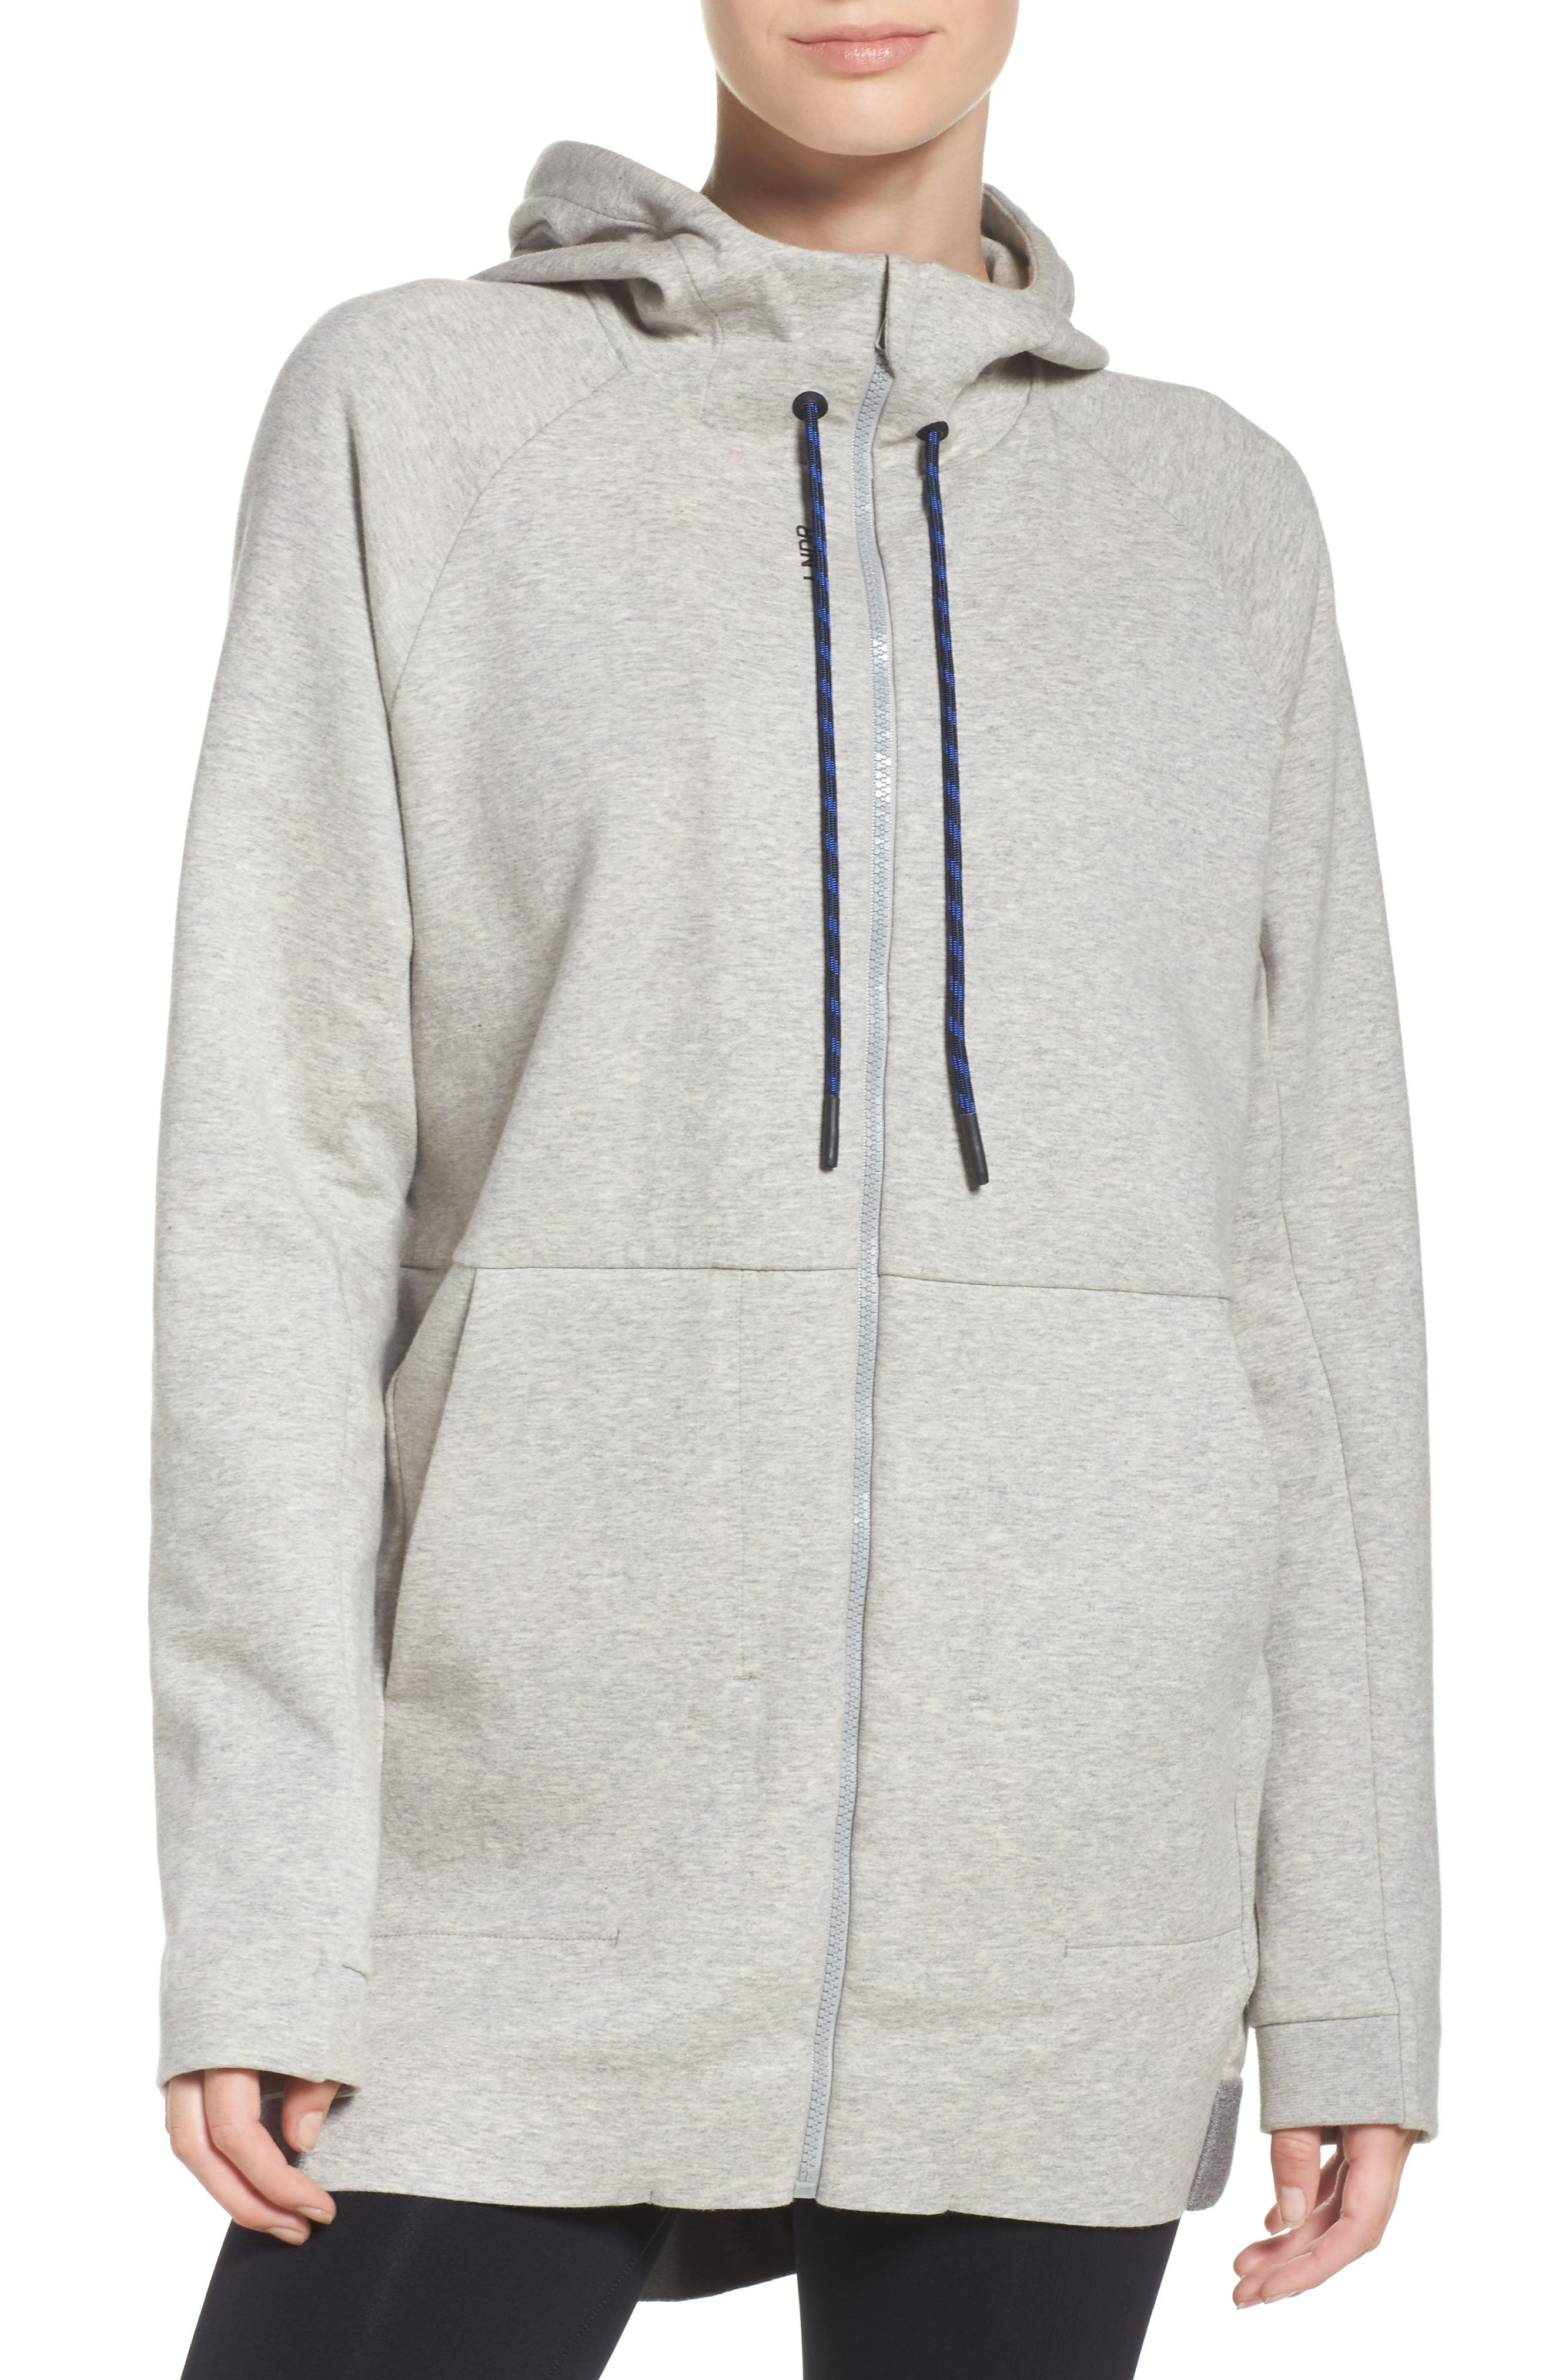 Switch Oversize Hoodie,                         Main,                         color, Grey